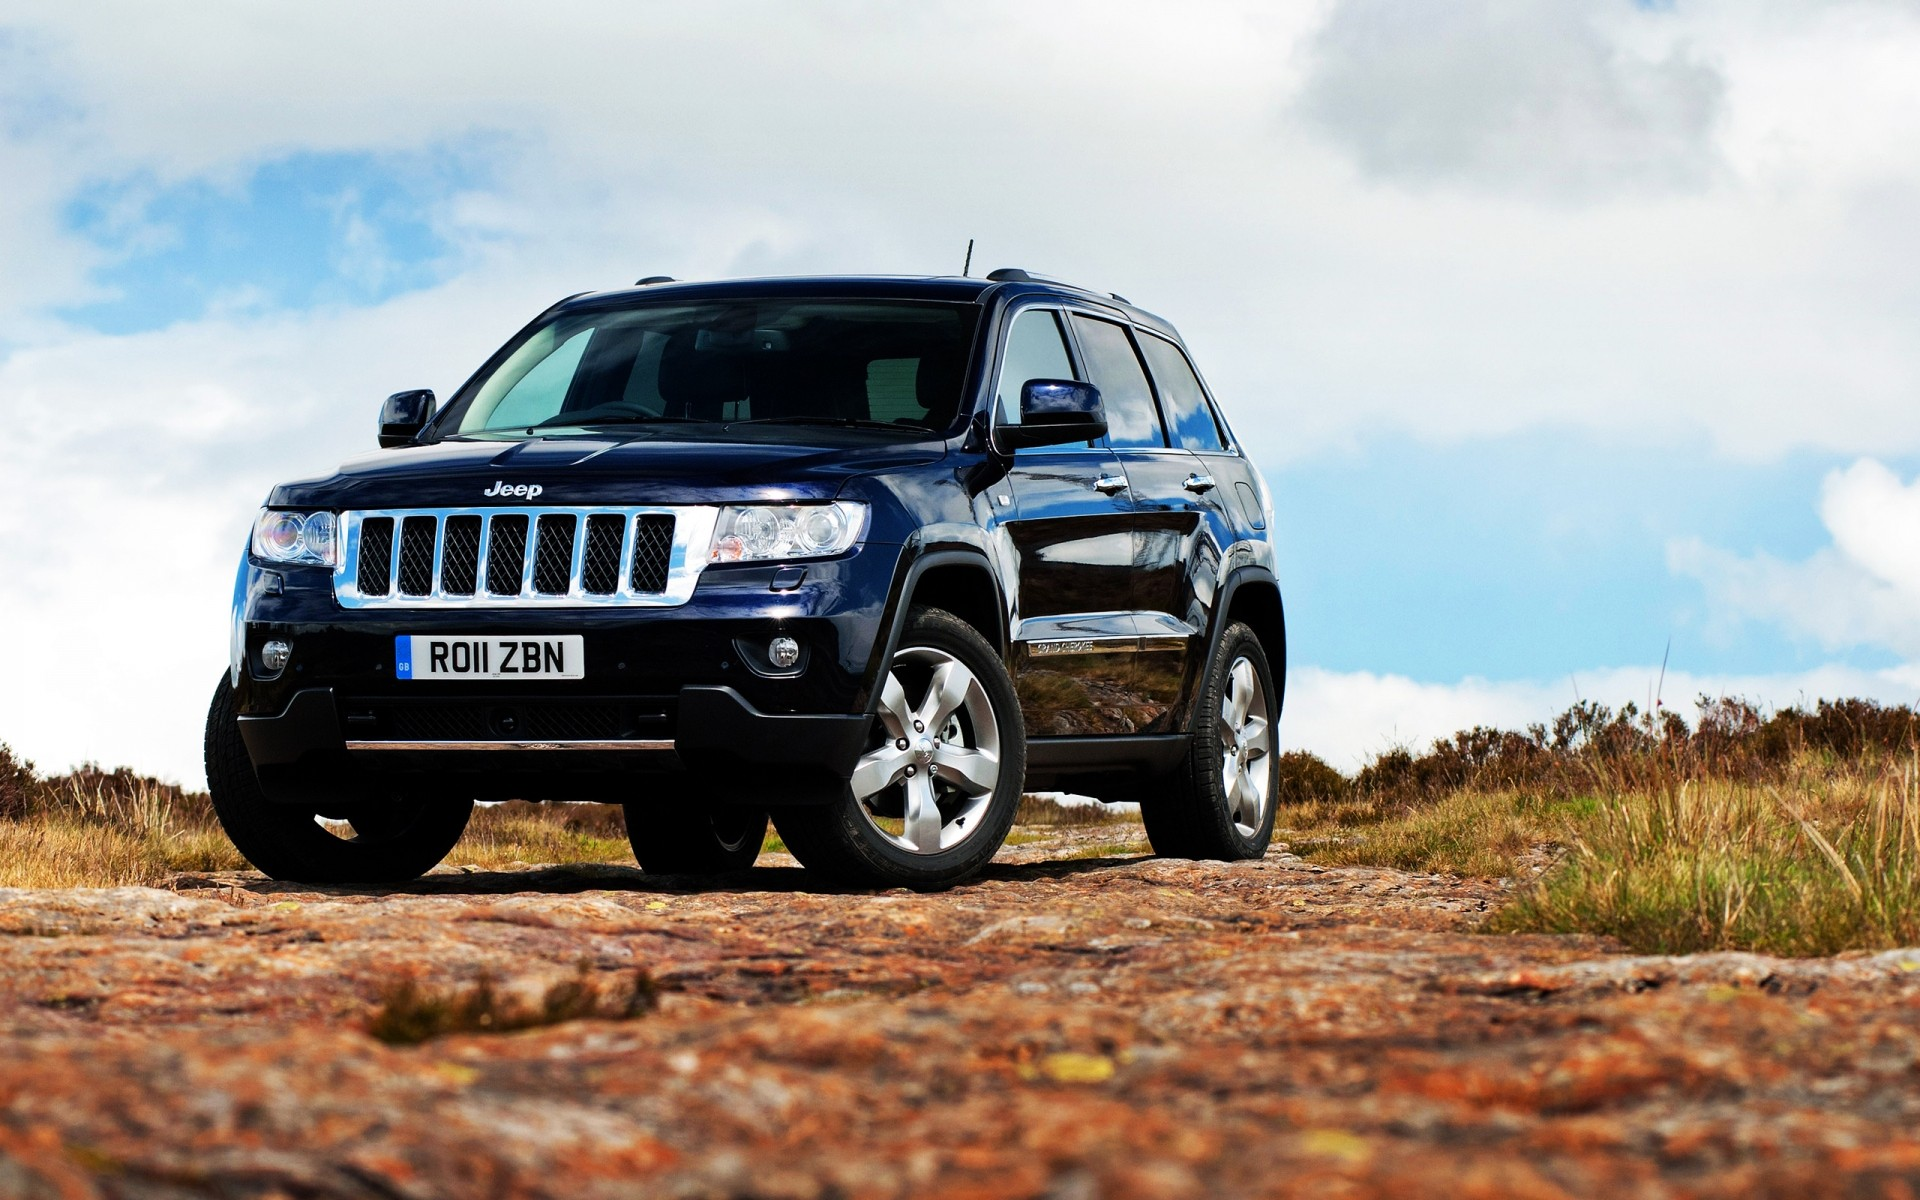 Jeep Grand Cherokee 2011 Iphone Wallpapers For Free